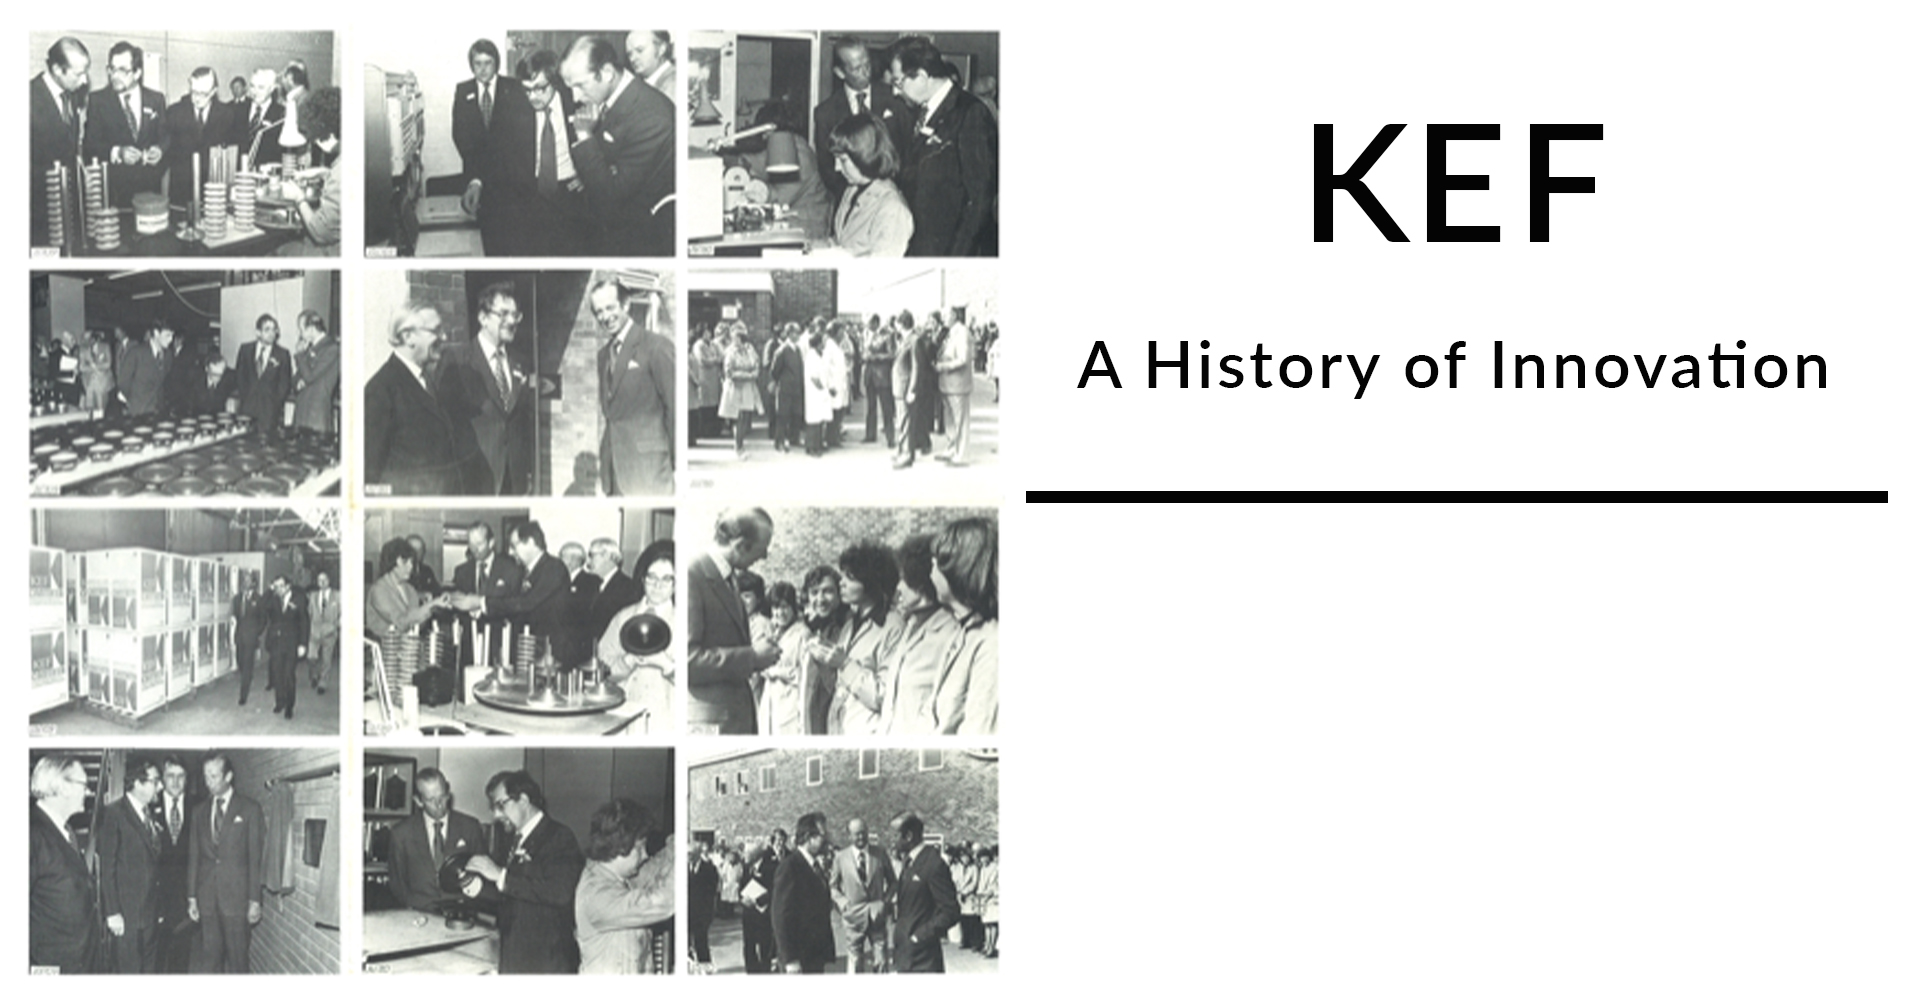 KEF Enters the Digital Age - In 1969